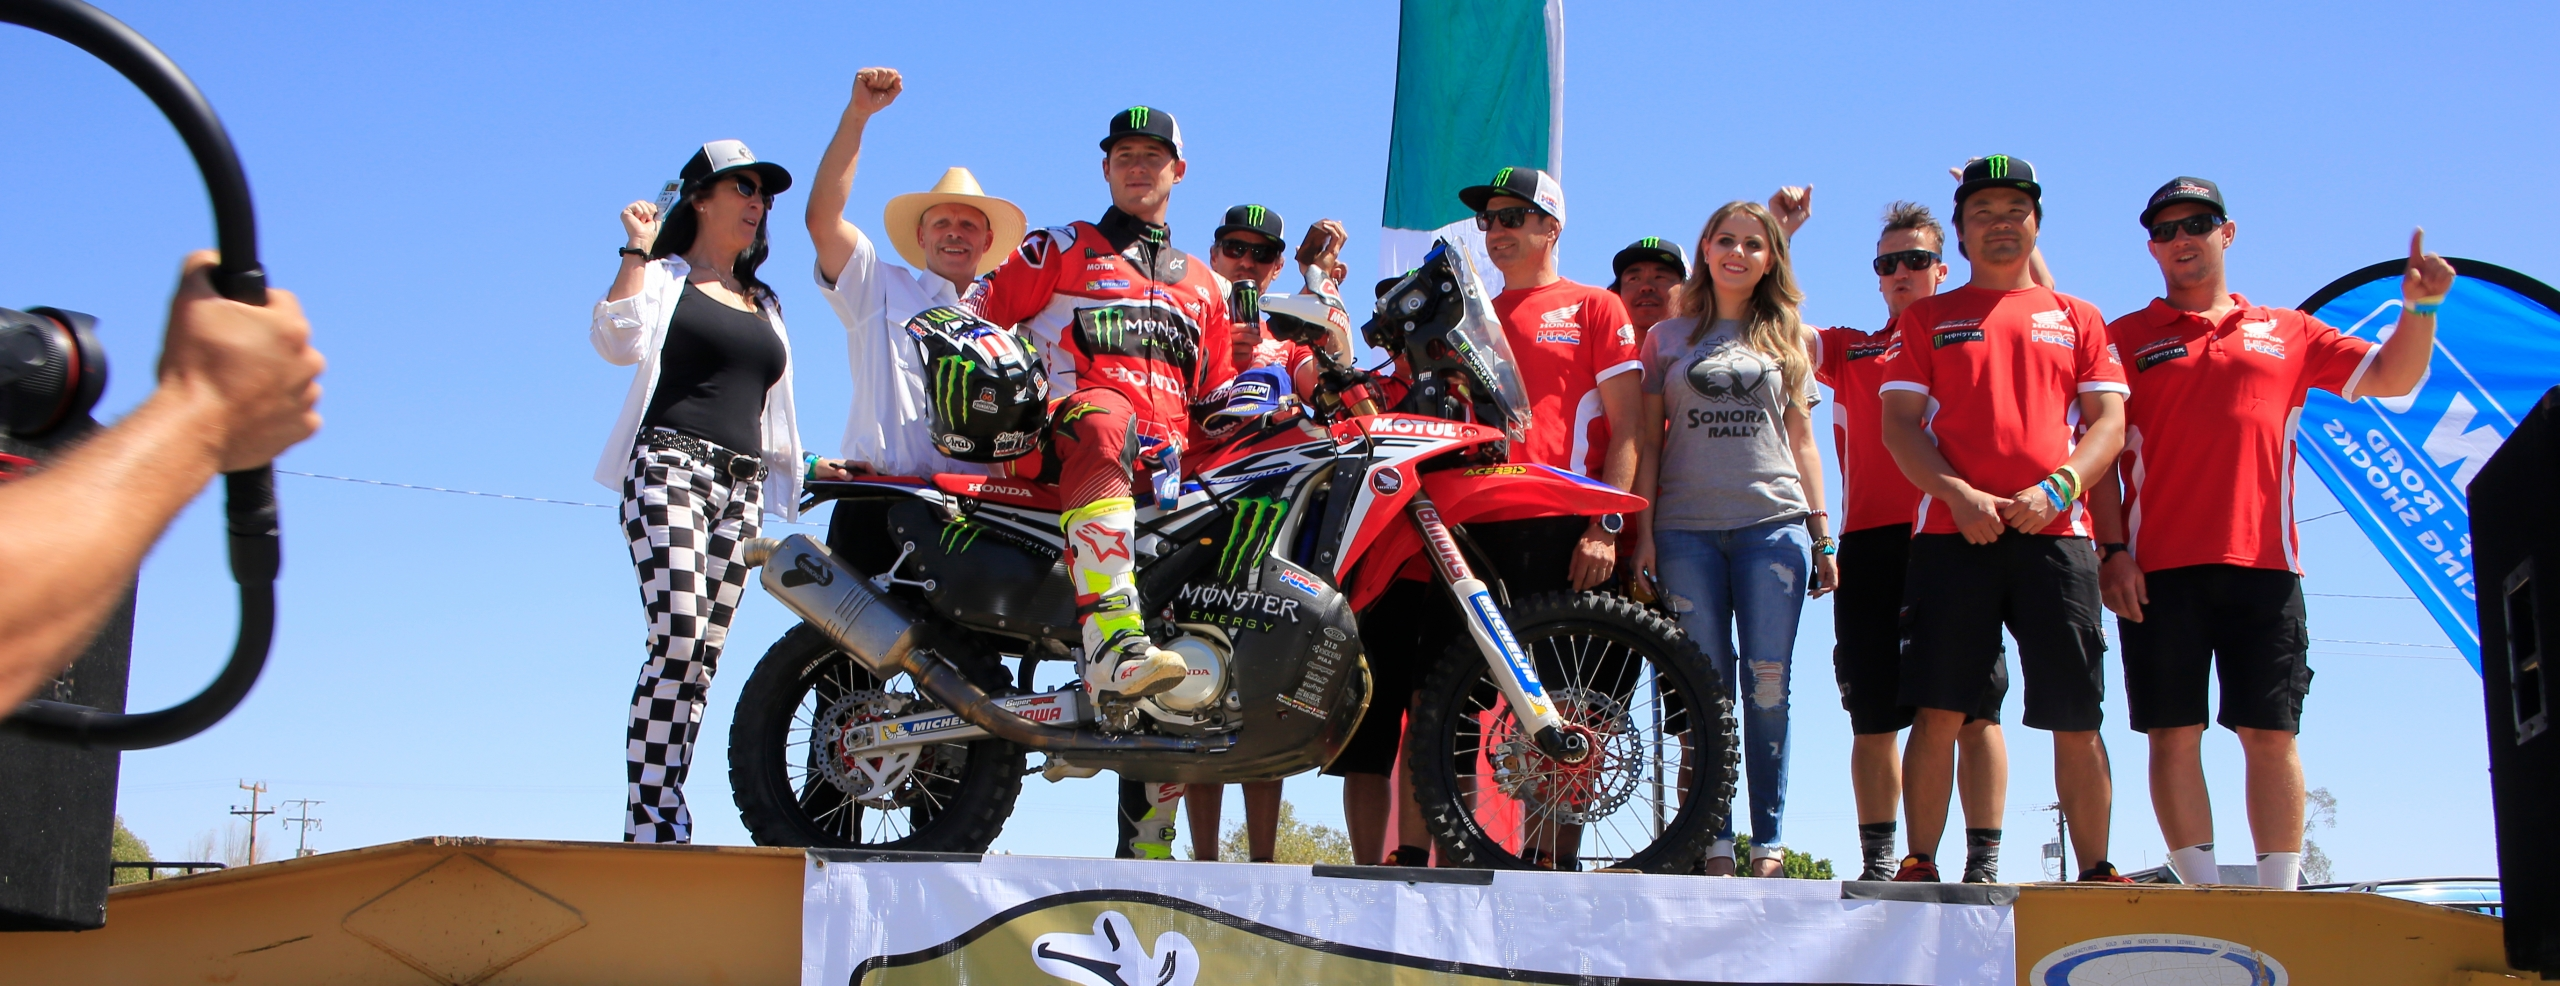 Monster Energy Honda Team kick off the 2017 season with a victory as Ricky Brabec wins the Sonora Rally